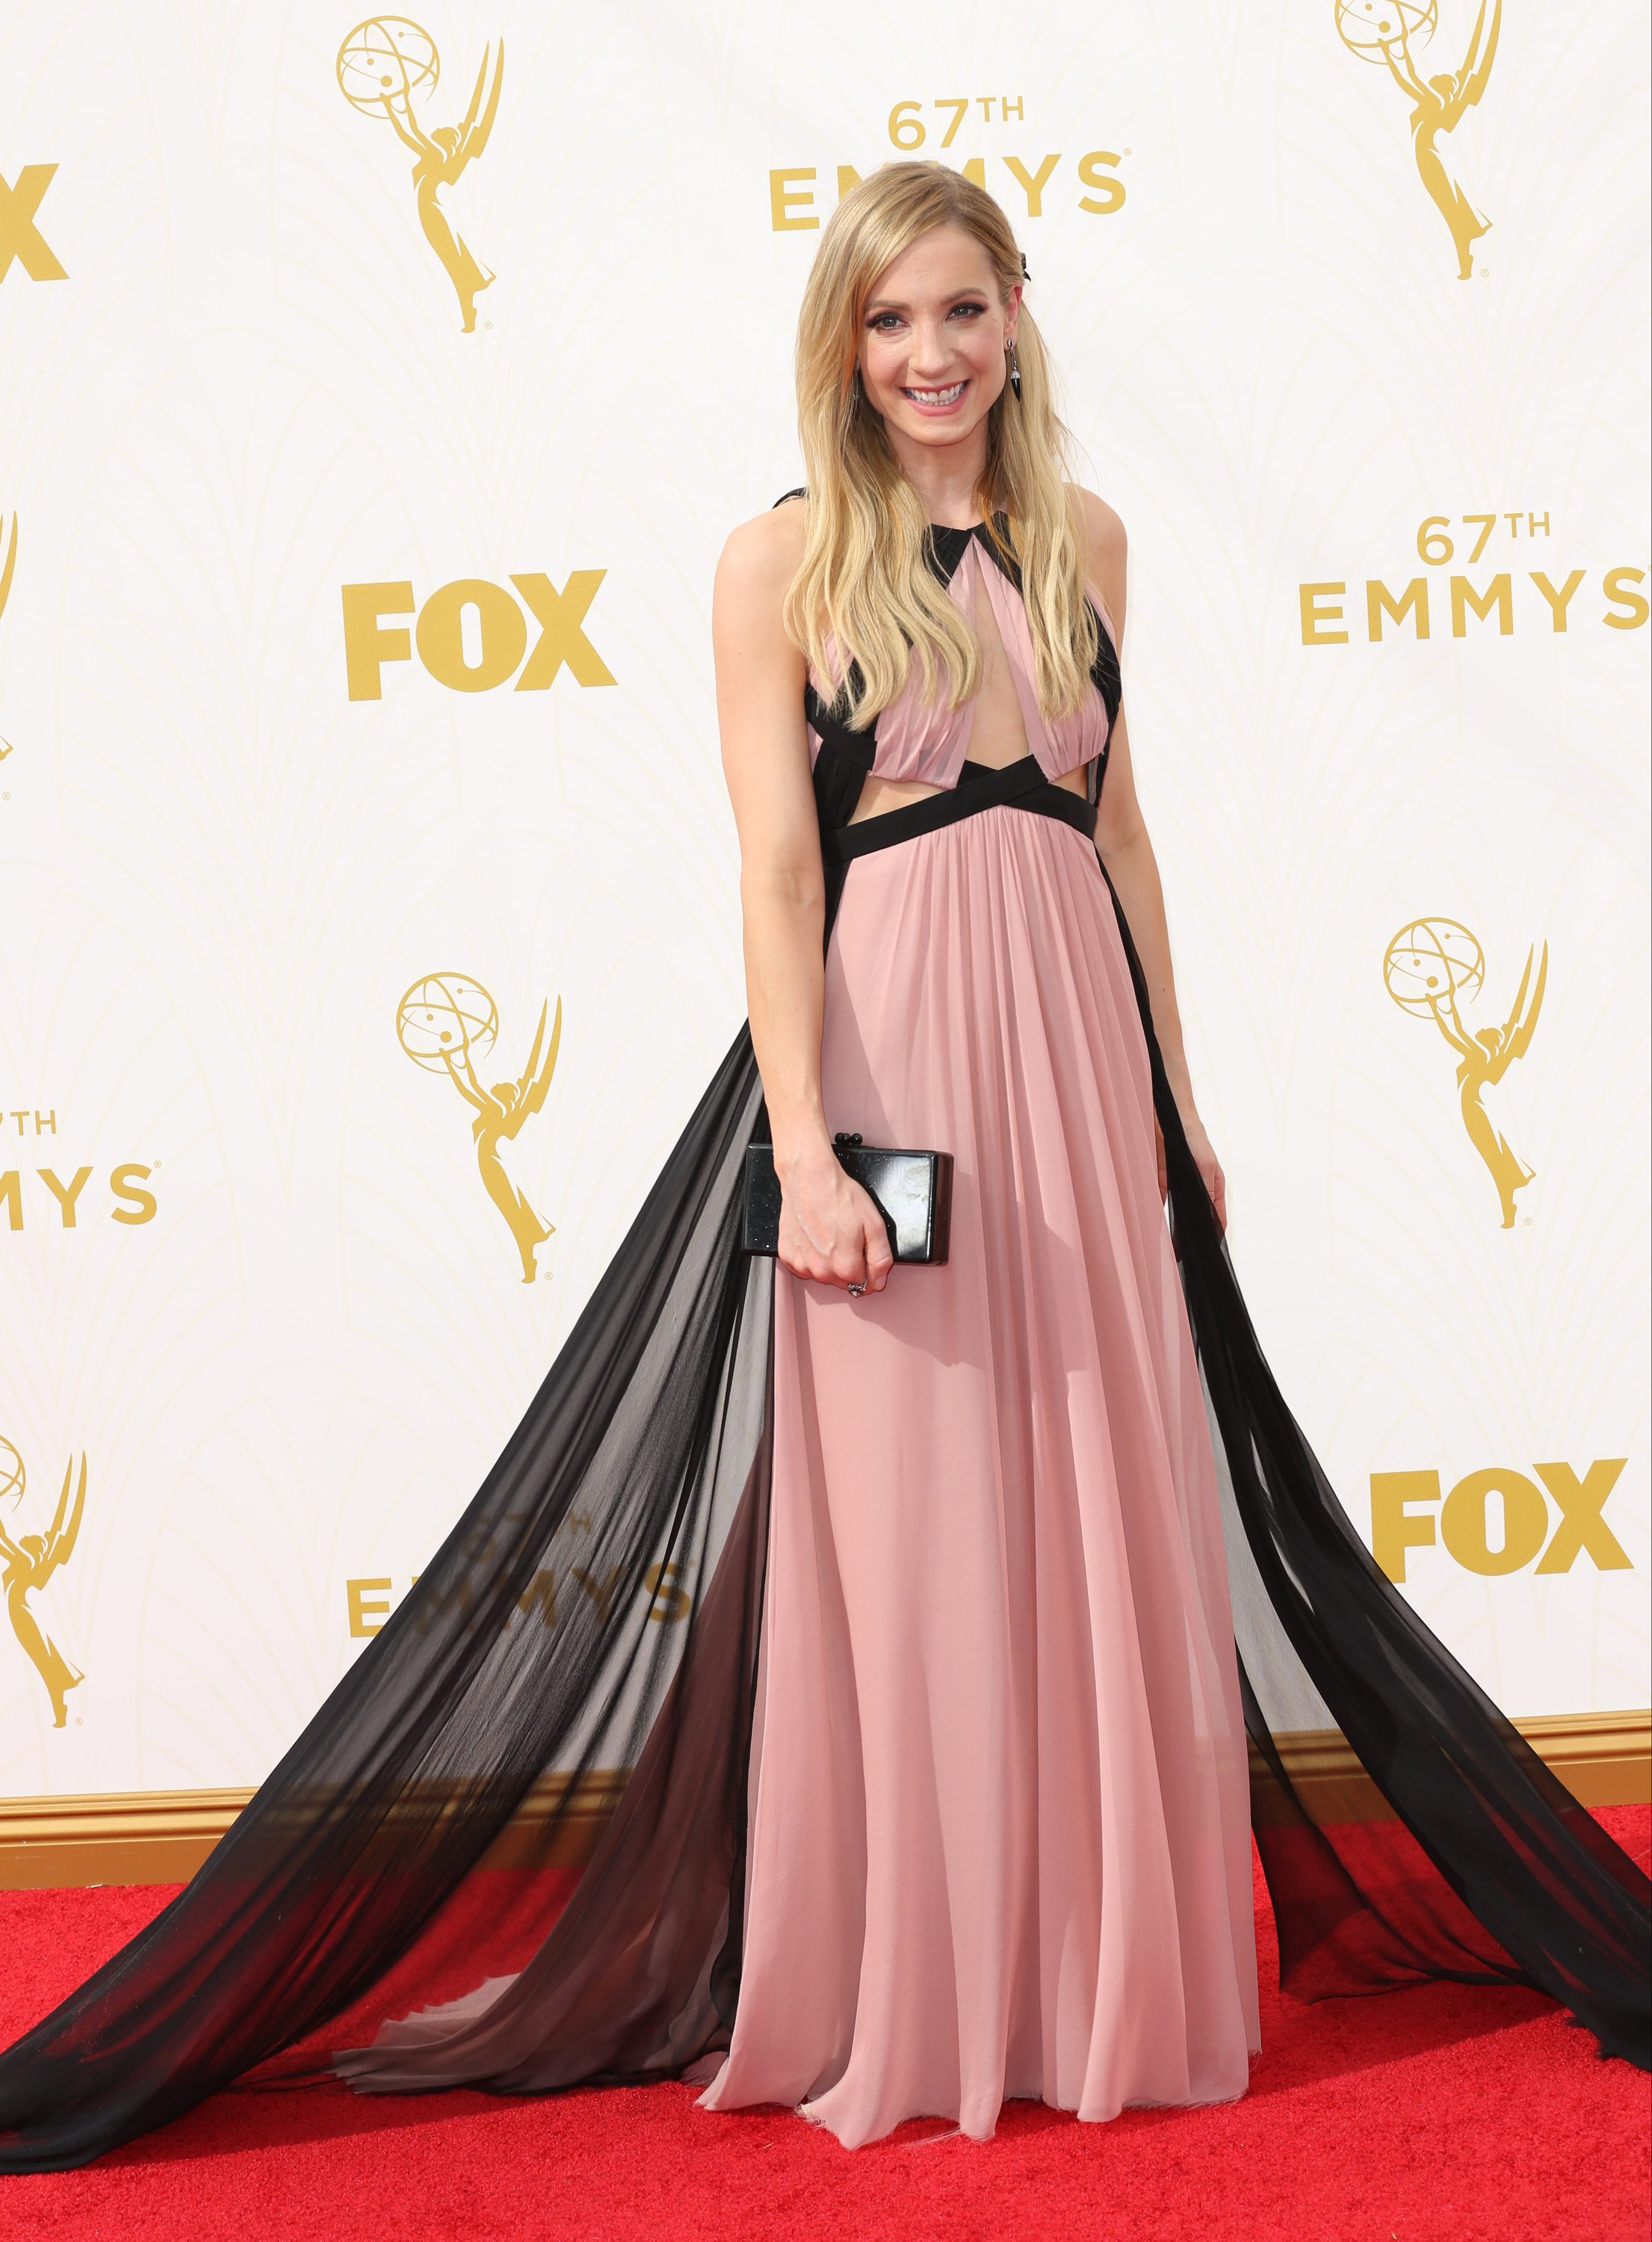 Celebrities arrive at 67th Emmys Red Carpet at Microsoft Theater.  Featuring: Joanne Froggatt Where: Los Angeles, California, United States When: 20 Sep 2015 Credit: Brian To/WENN.com